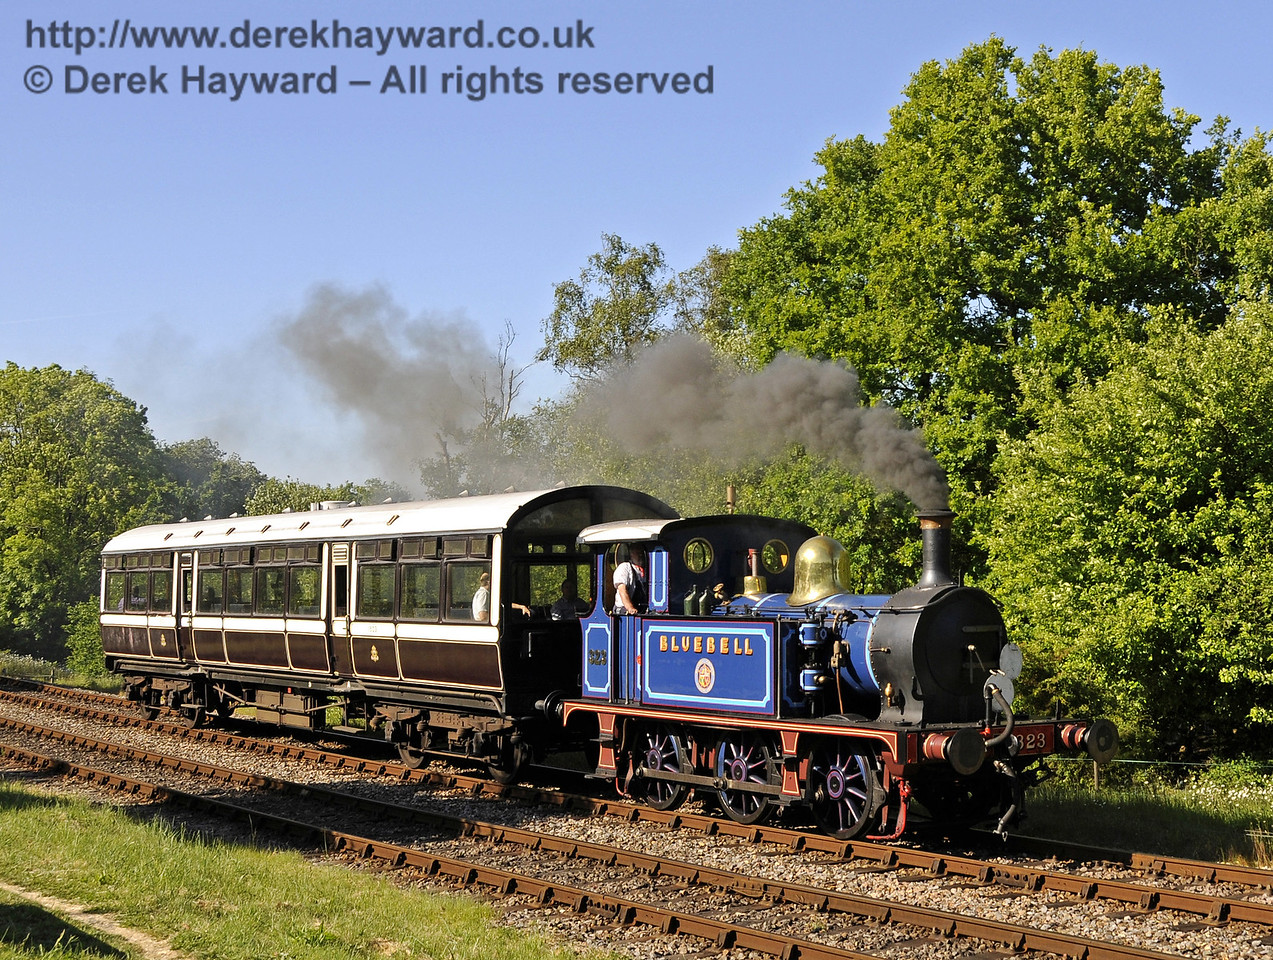 323 Bluebell leaves Kingscote with the Observation Car.  21.05.2011  7213